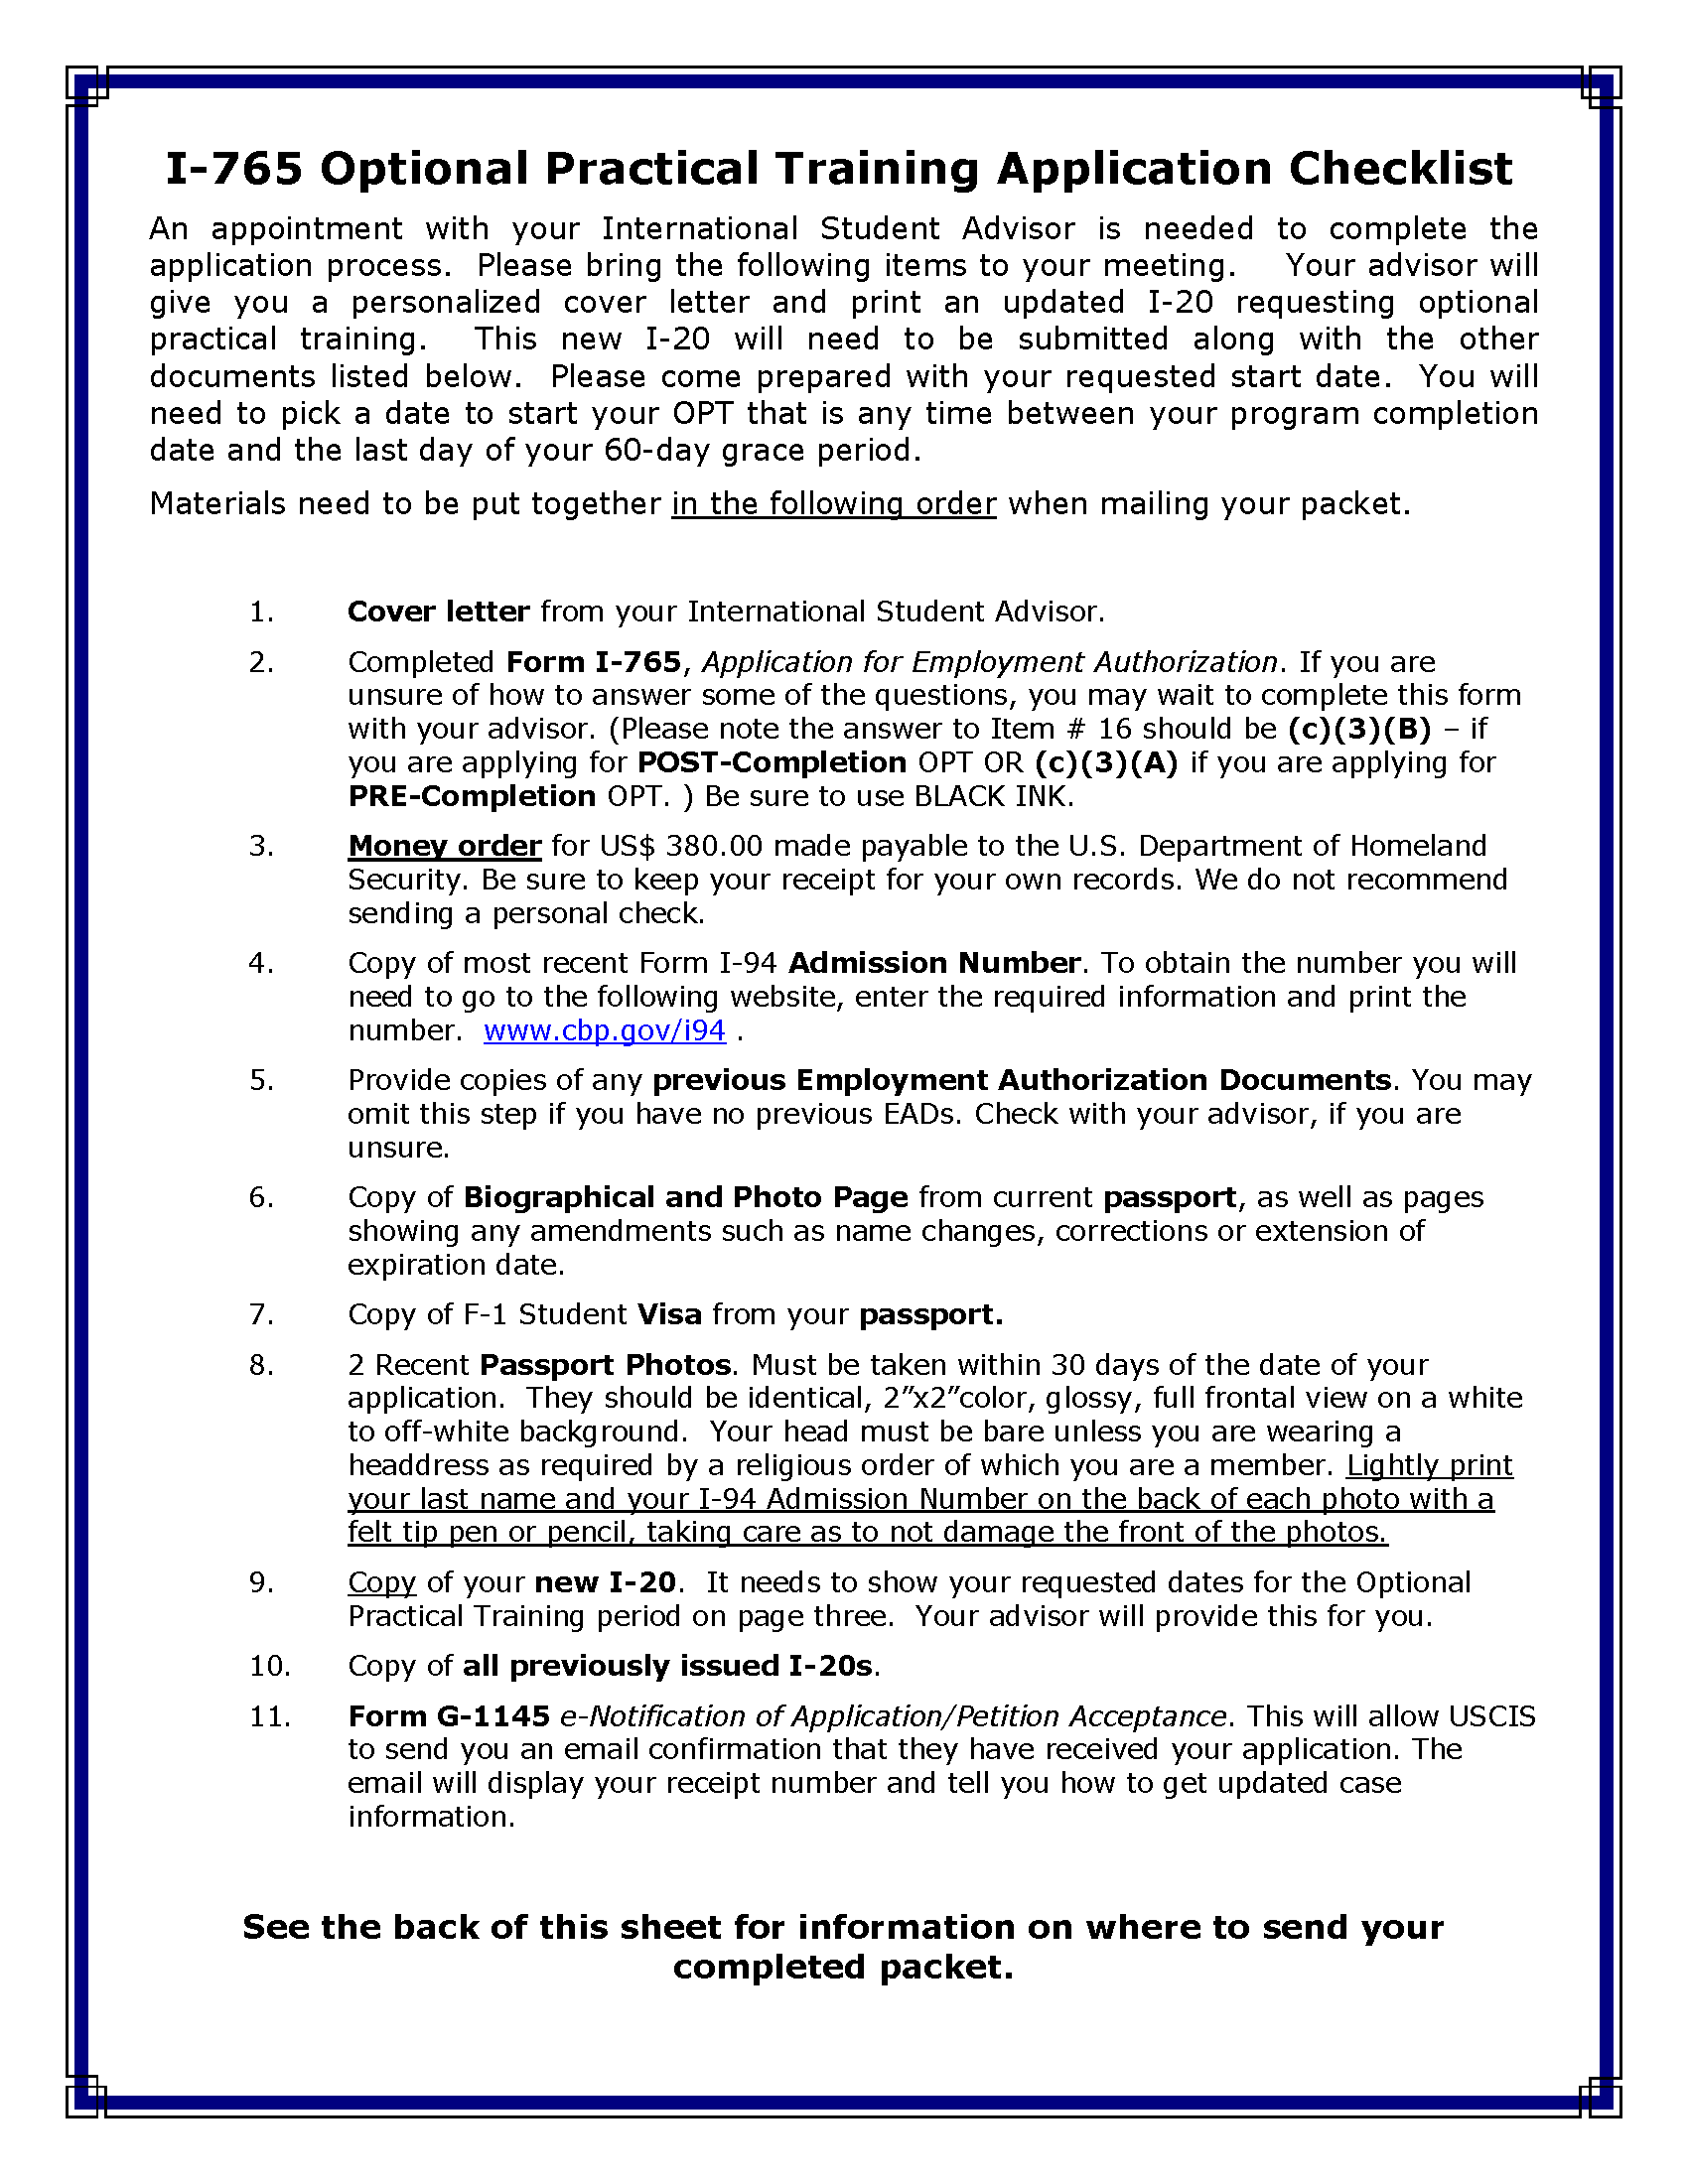 JWU OPT CHECKLIST PAGE 1 OF 2 | Optional Practical Training (OPT ...